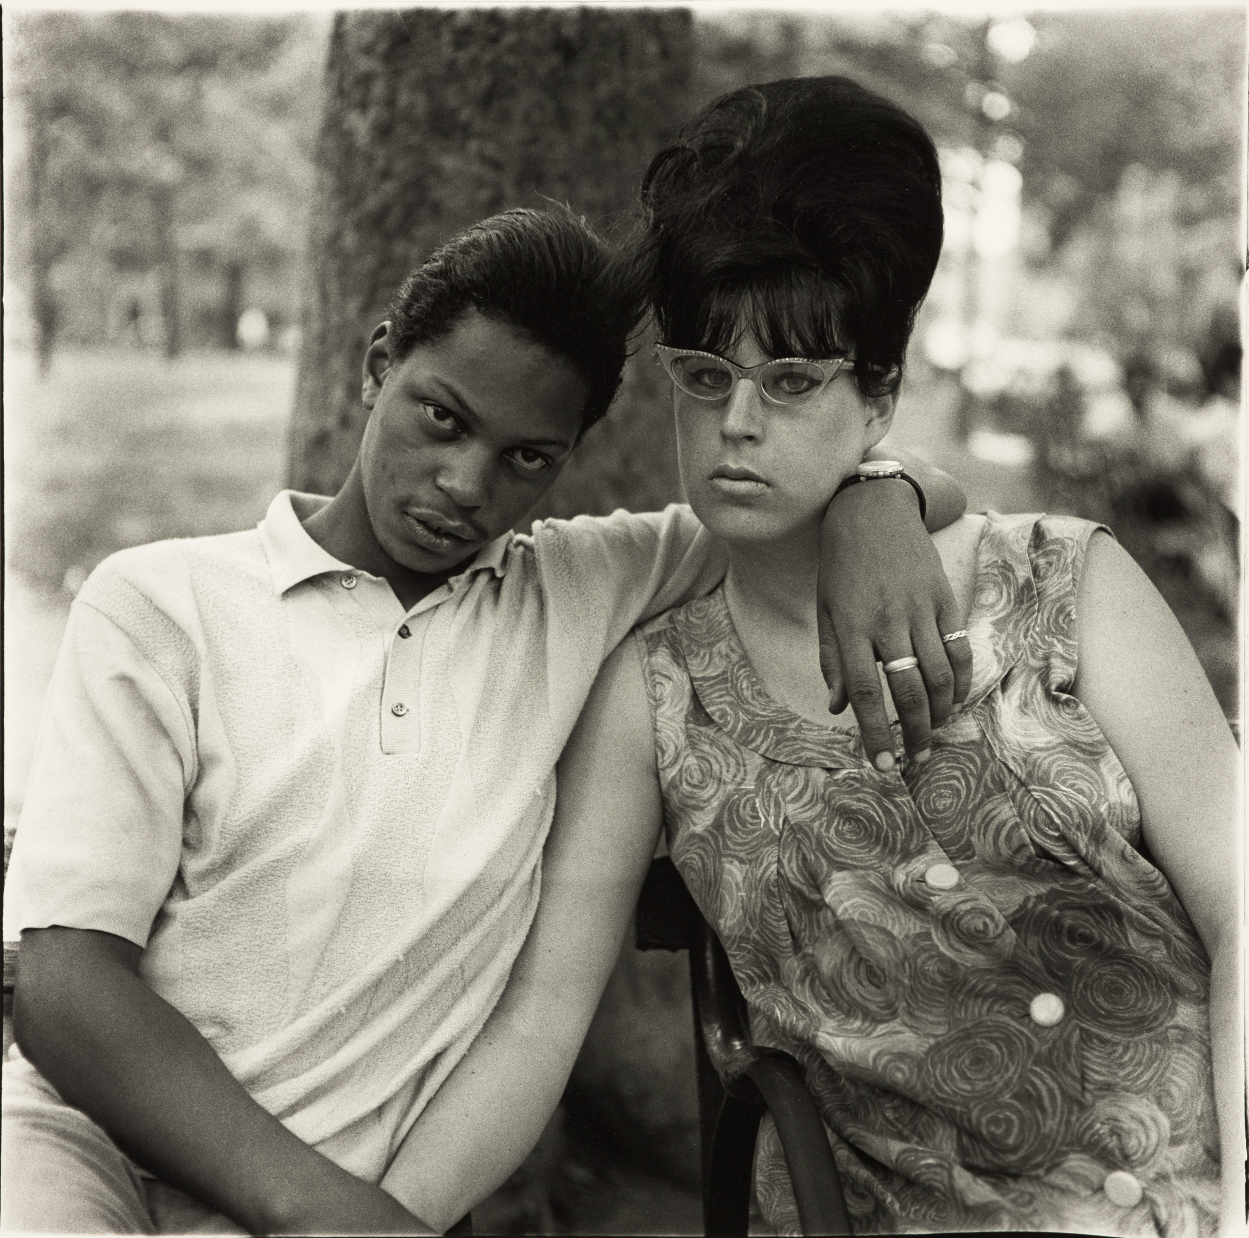 'Young Man and his Wife' by Diane Arbus